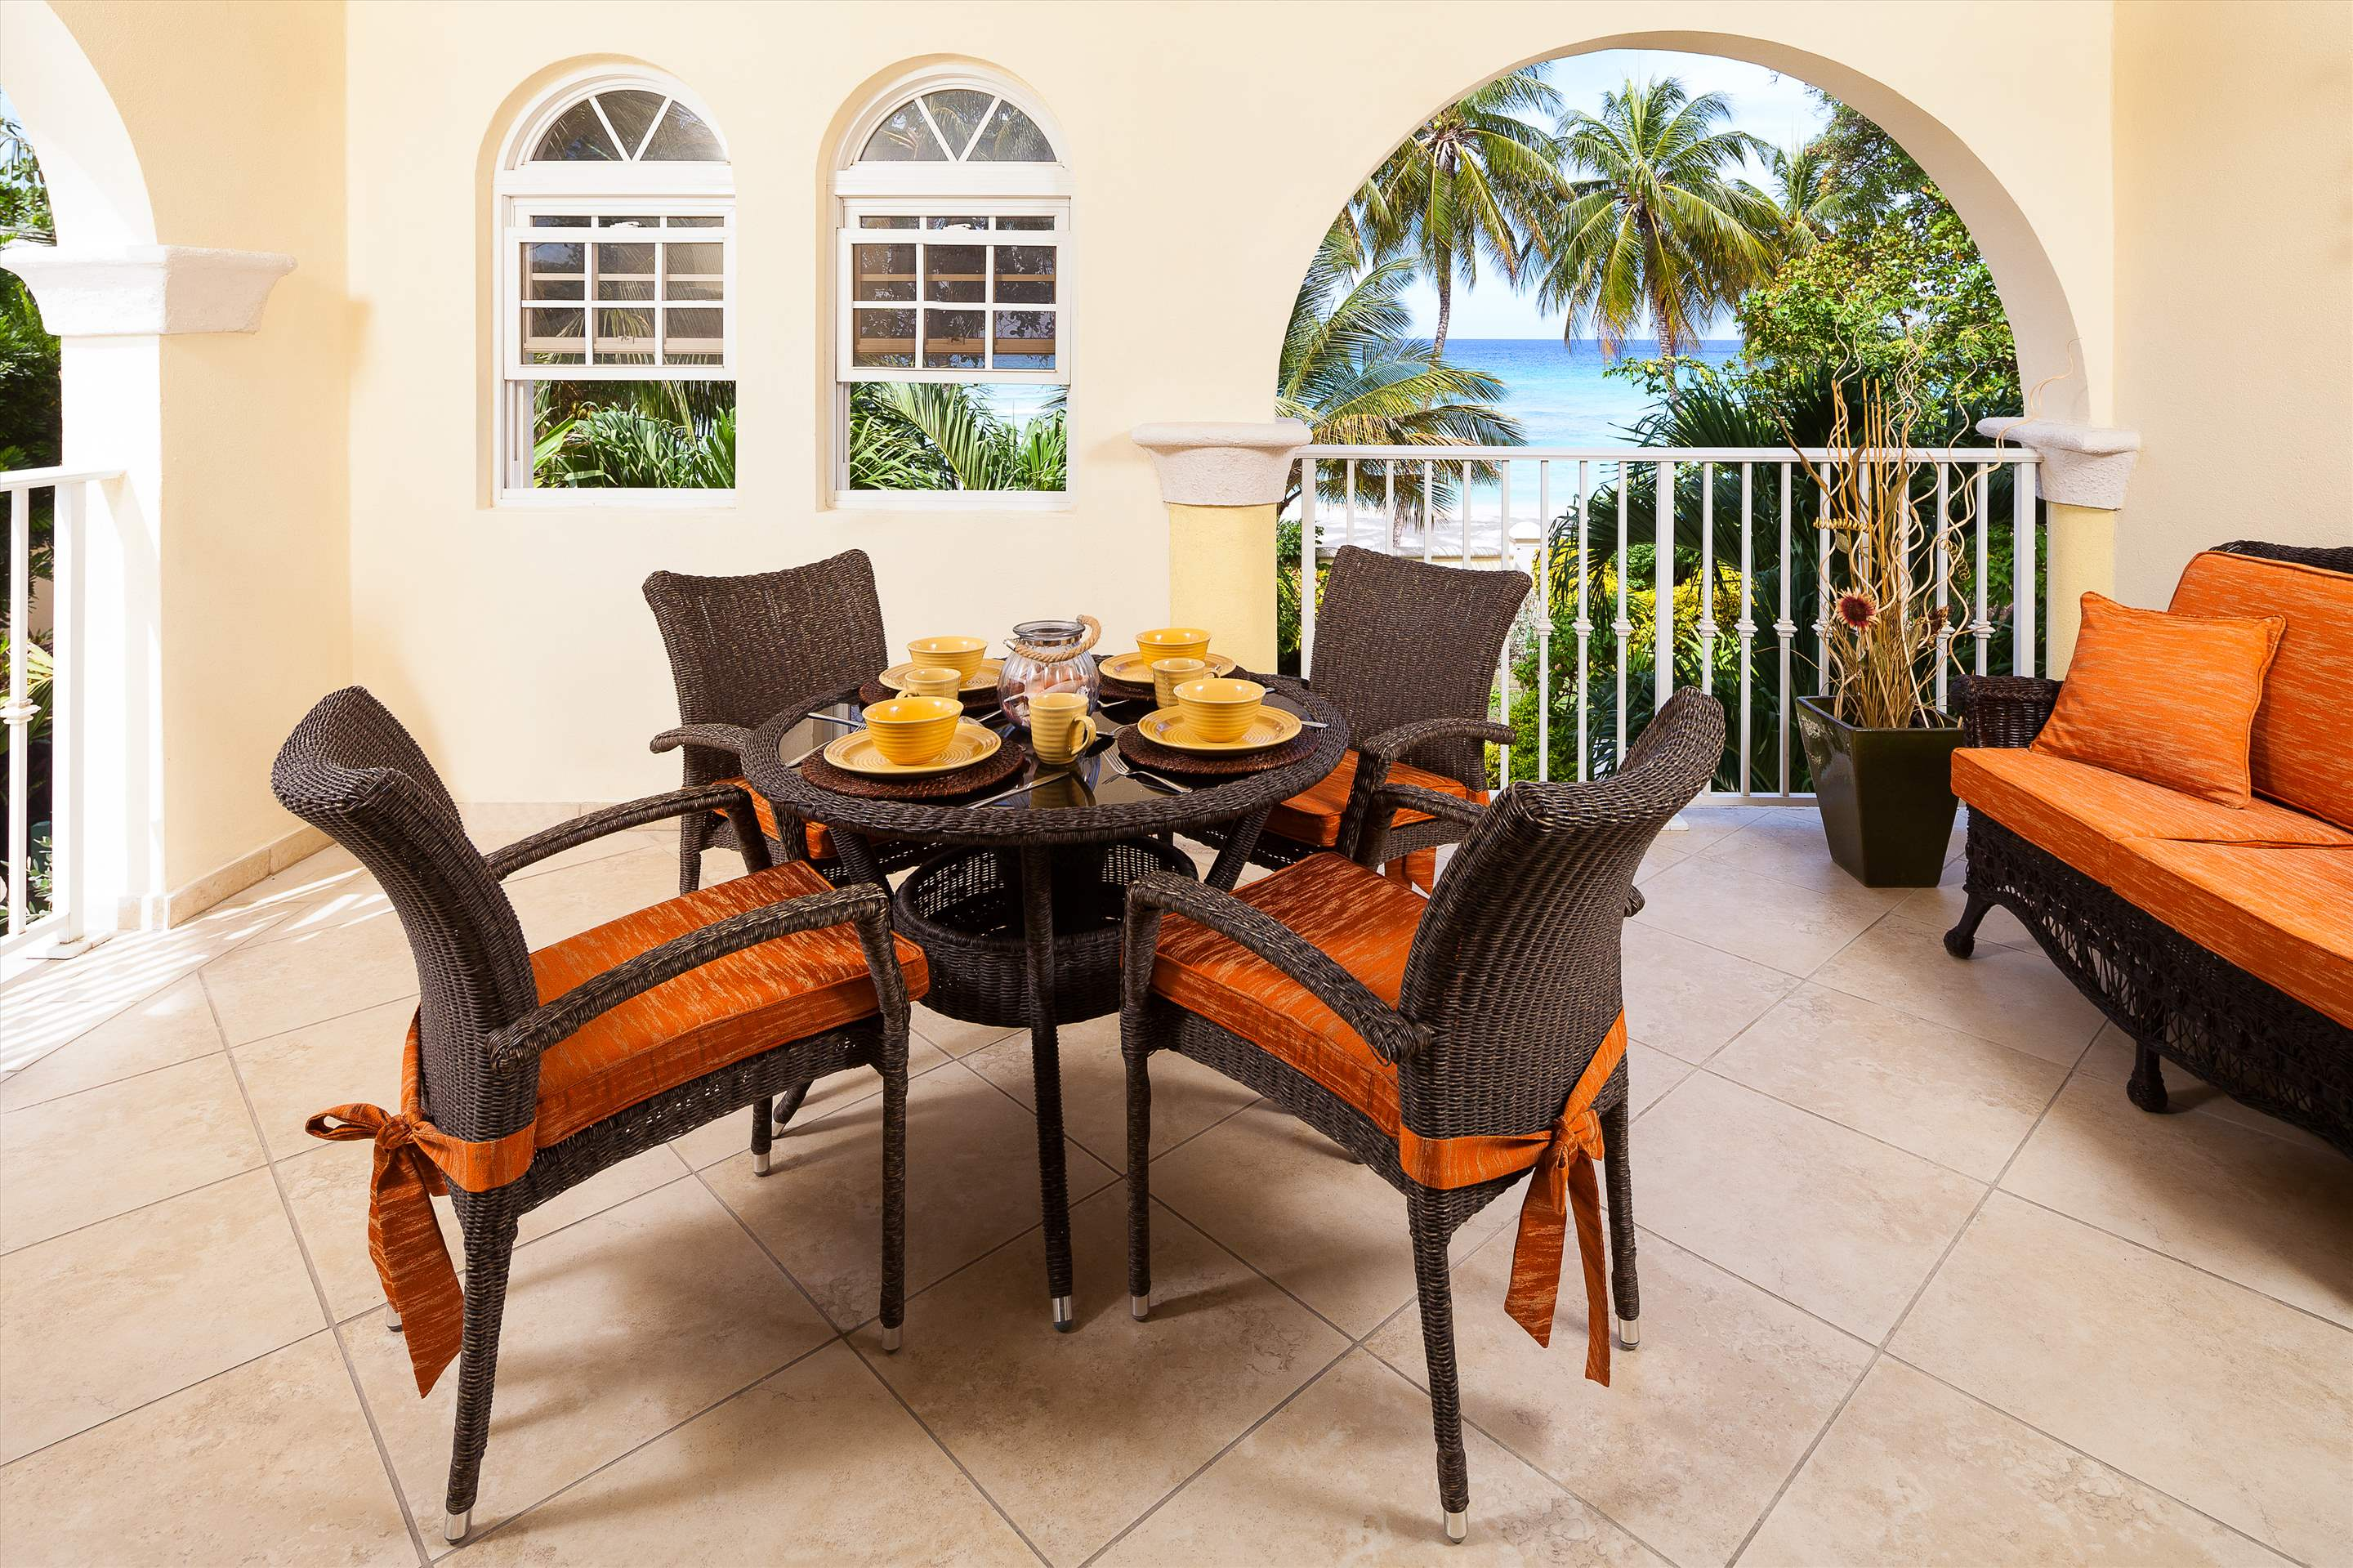 Sapphire Beach 118, 2 bedroom , 2 bedroom apartment in St. Lawrence Gap & South Coast, Barbados Photo #1